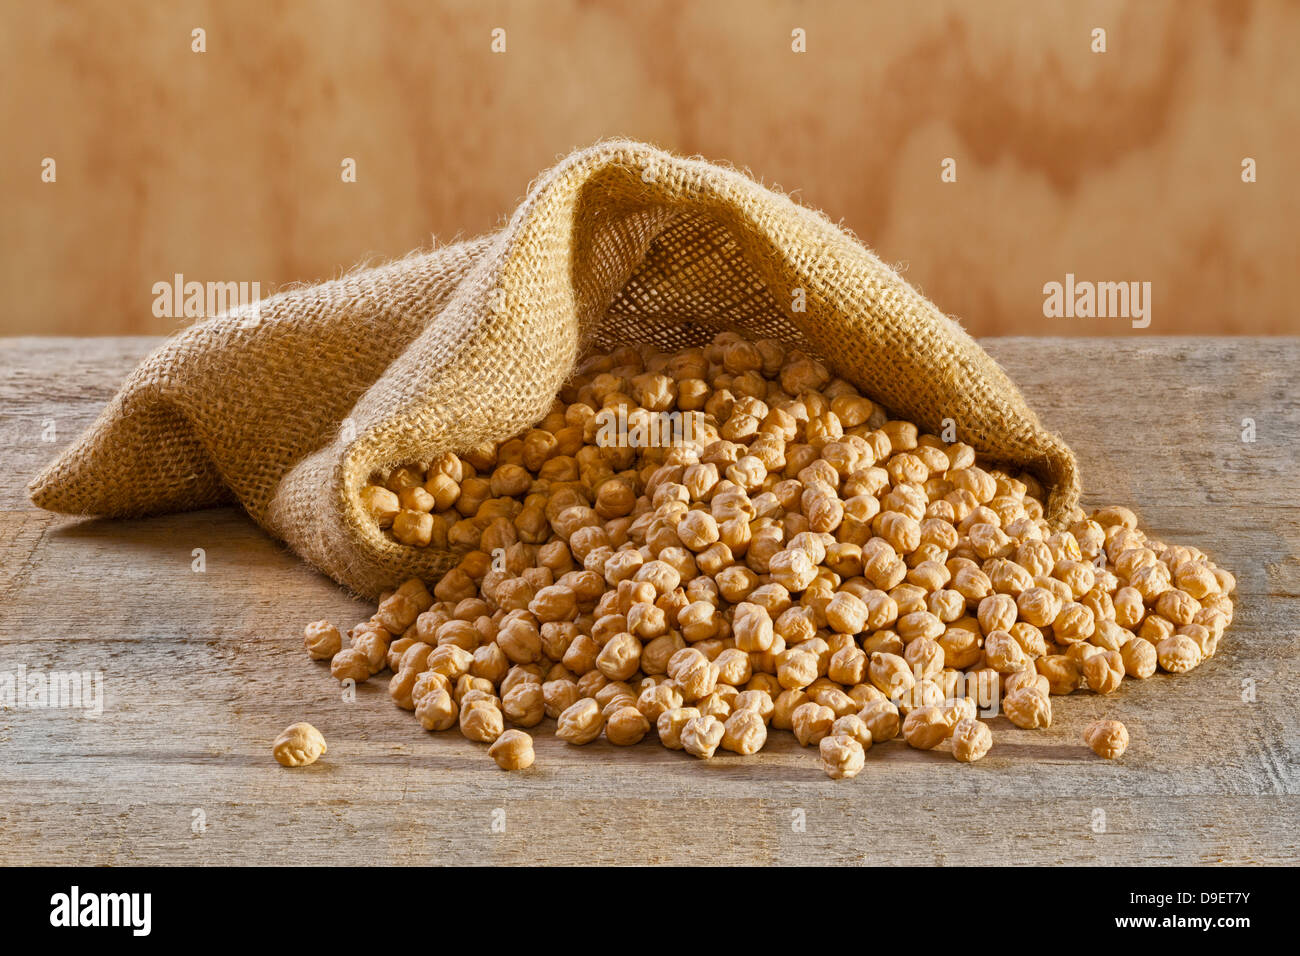 Chickpeas in Burlap Sack - raw chickpeas spilling from a burlap or jute sack. - Stock Image